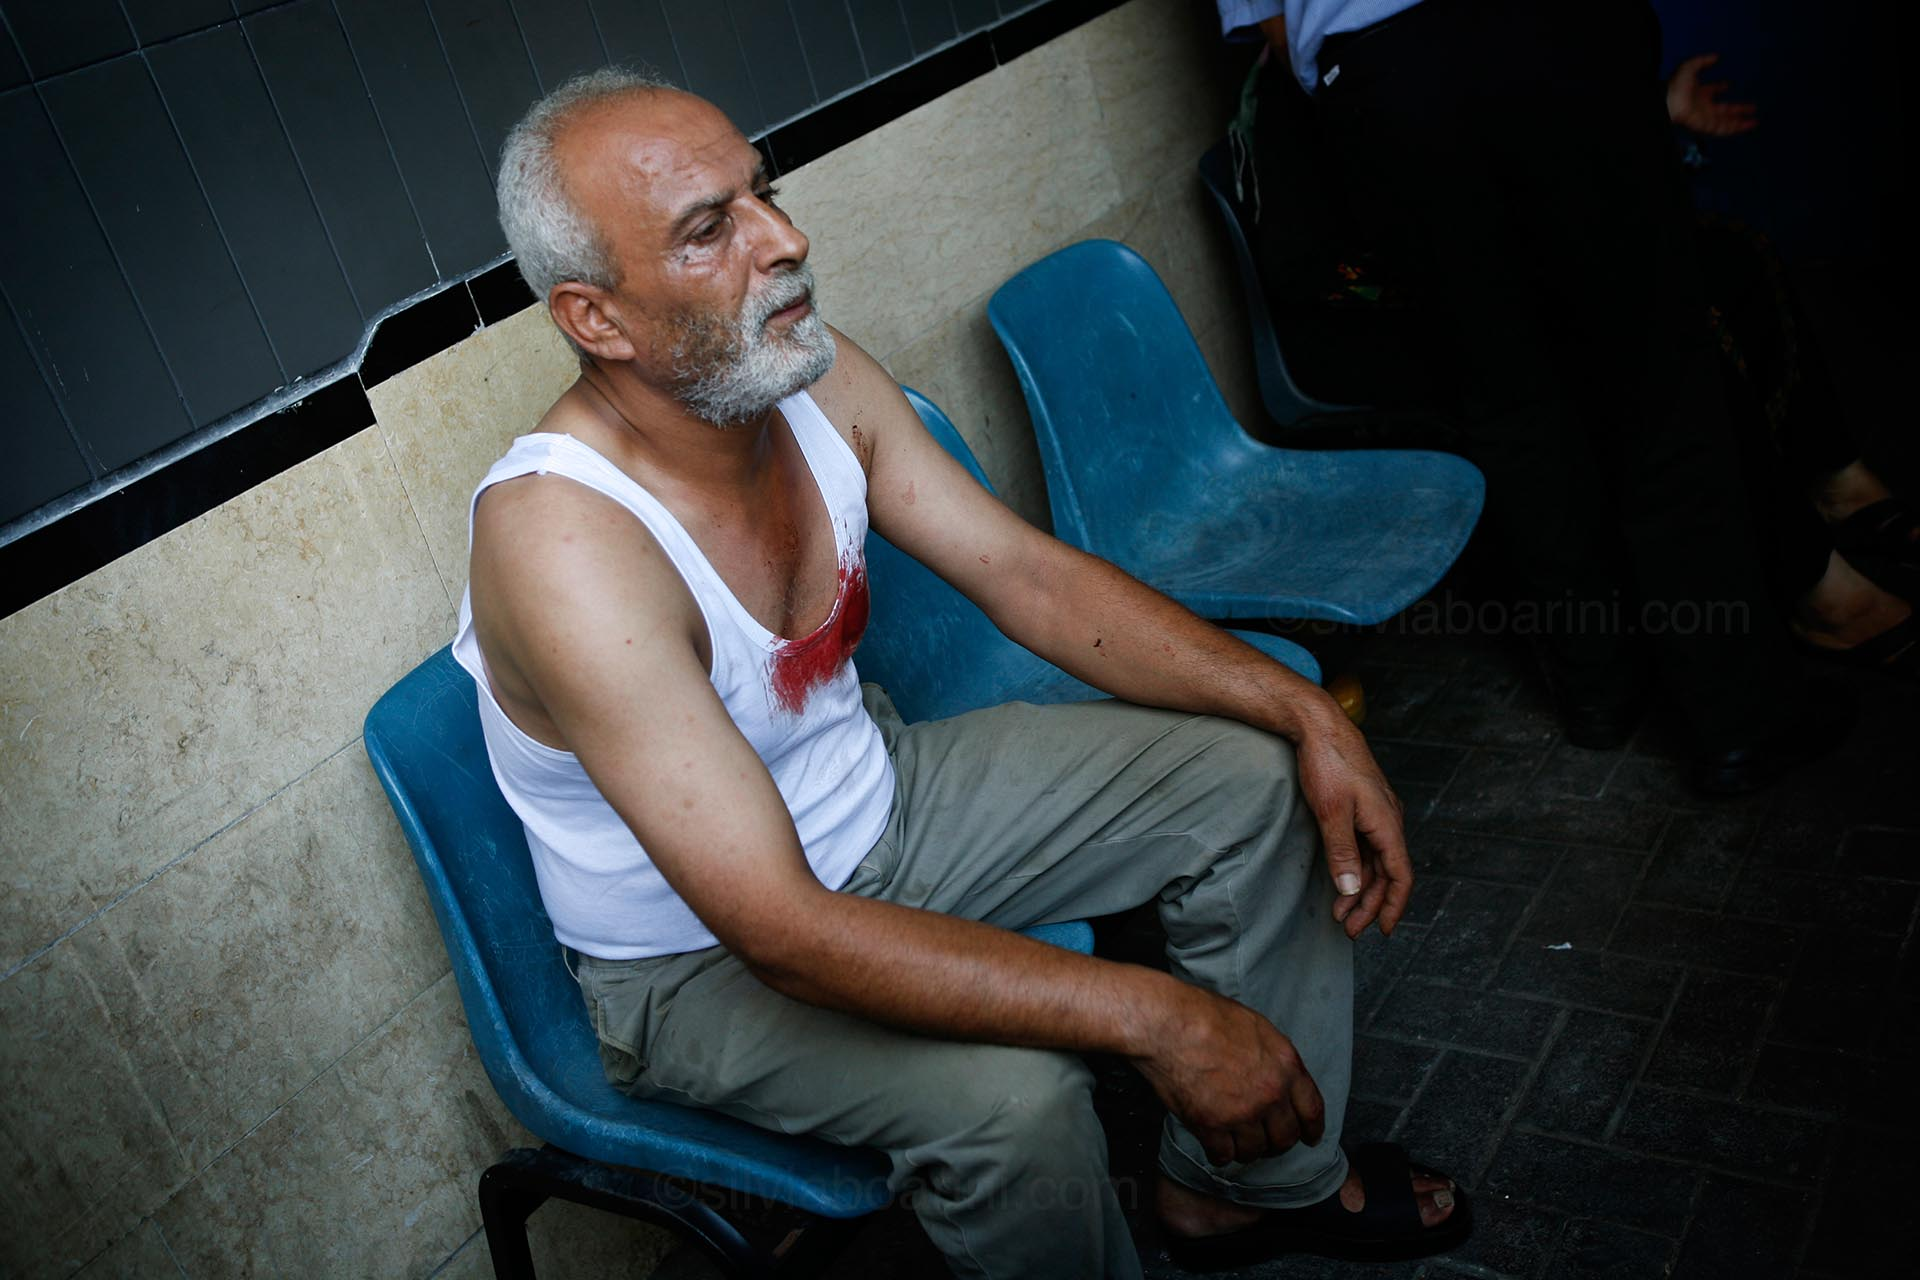 Relatives sit in shock outside Shifa hospital following an explosion at Shati camp, which killed 11 children. Amnesty International attributed the explosion to a misfired Palestinian rocket. Gaza 28 July 2014